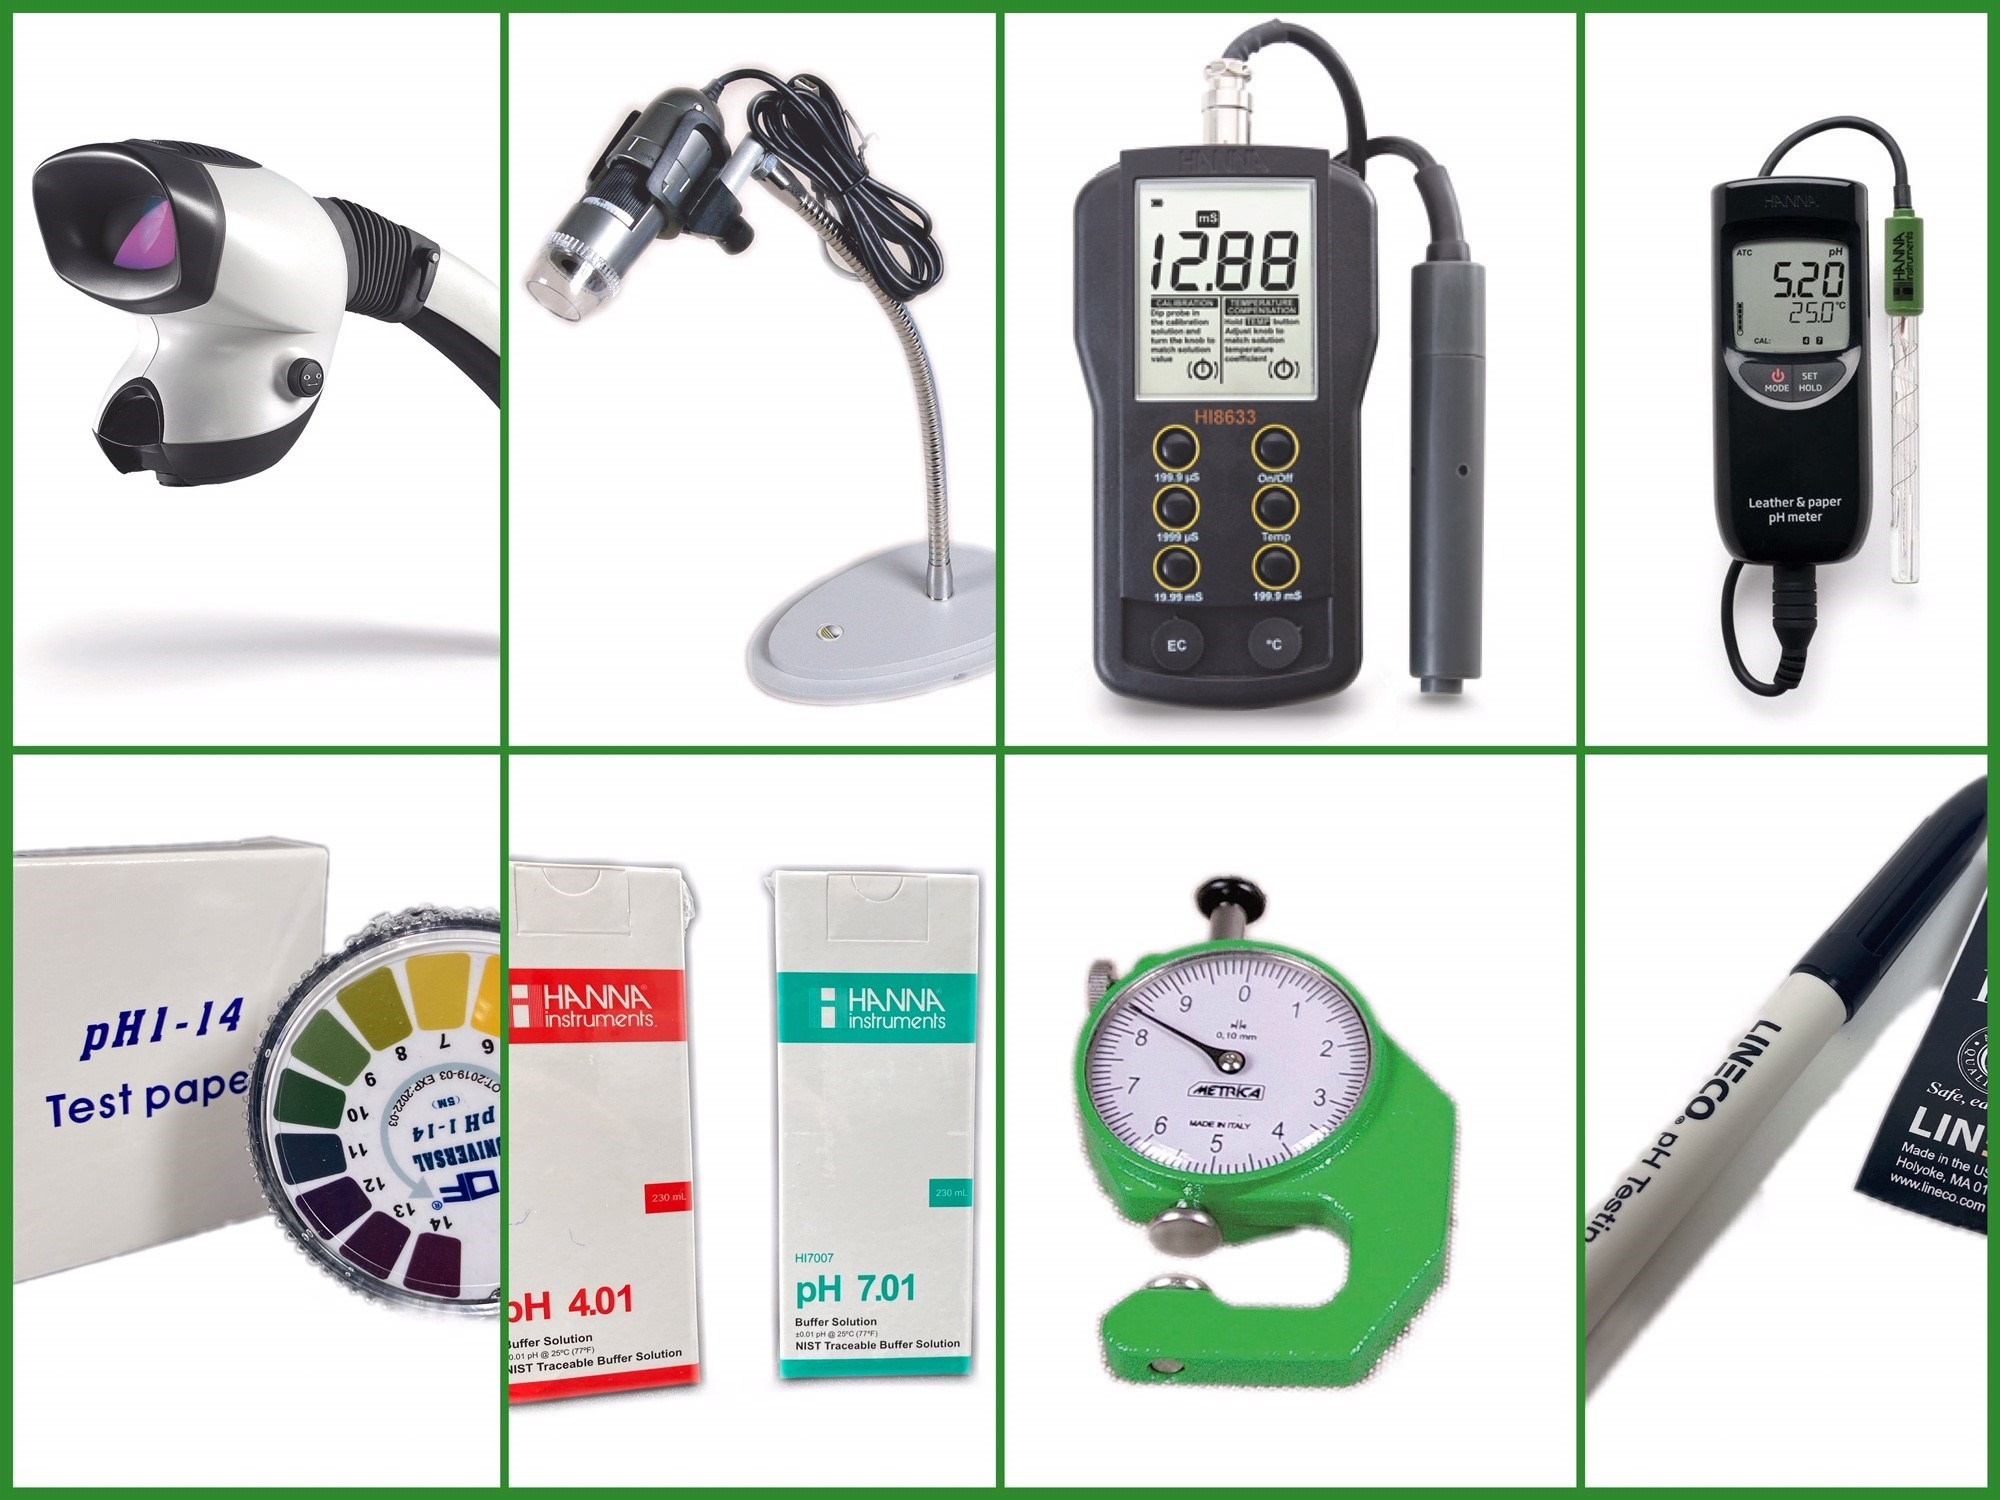 Measuring devices and environmental monitoring